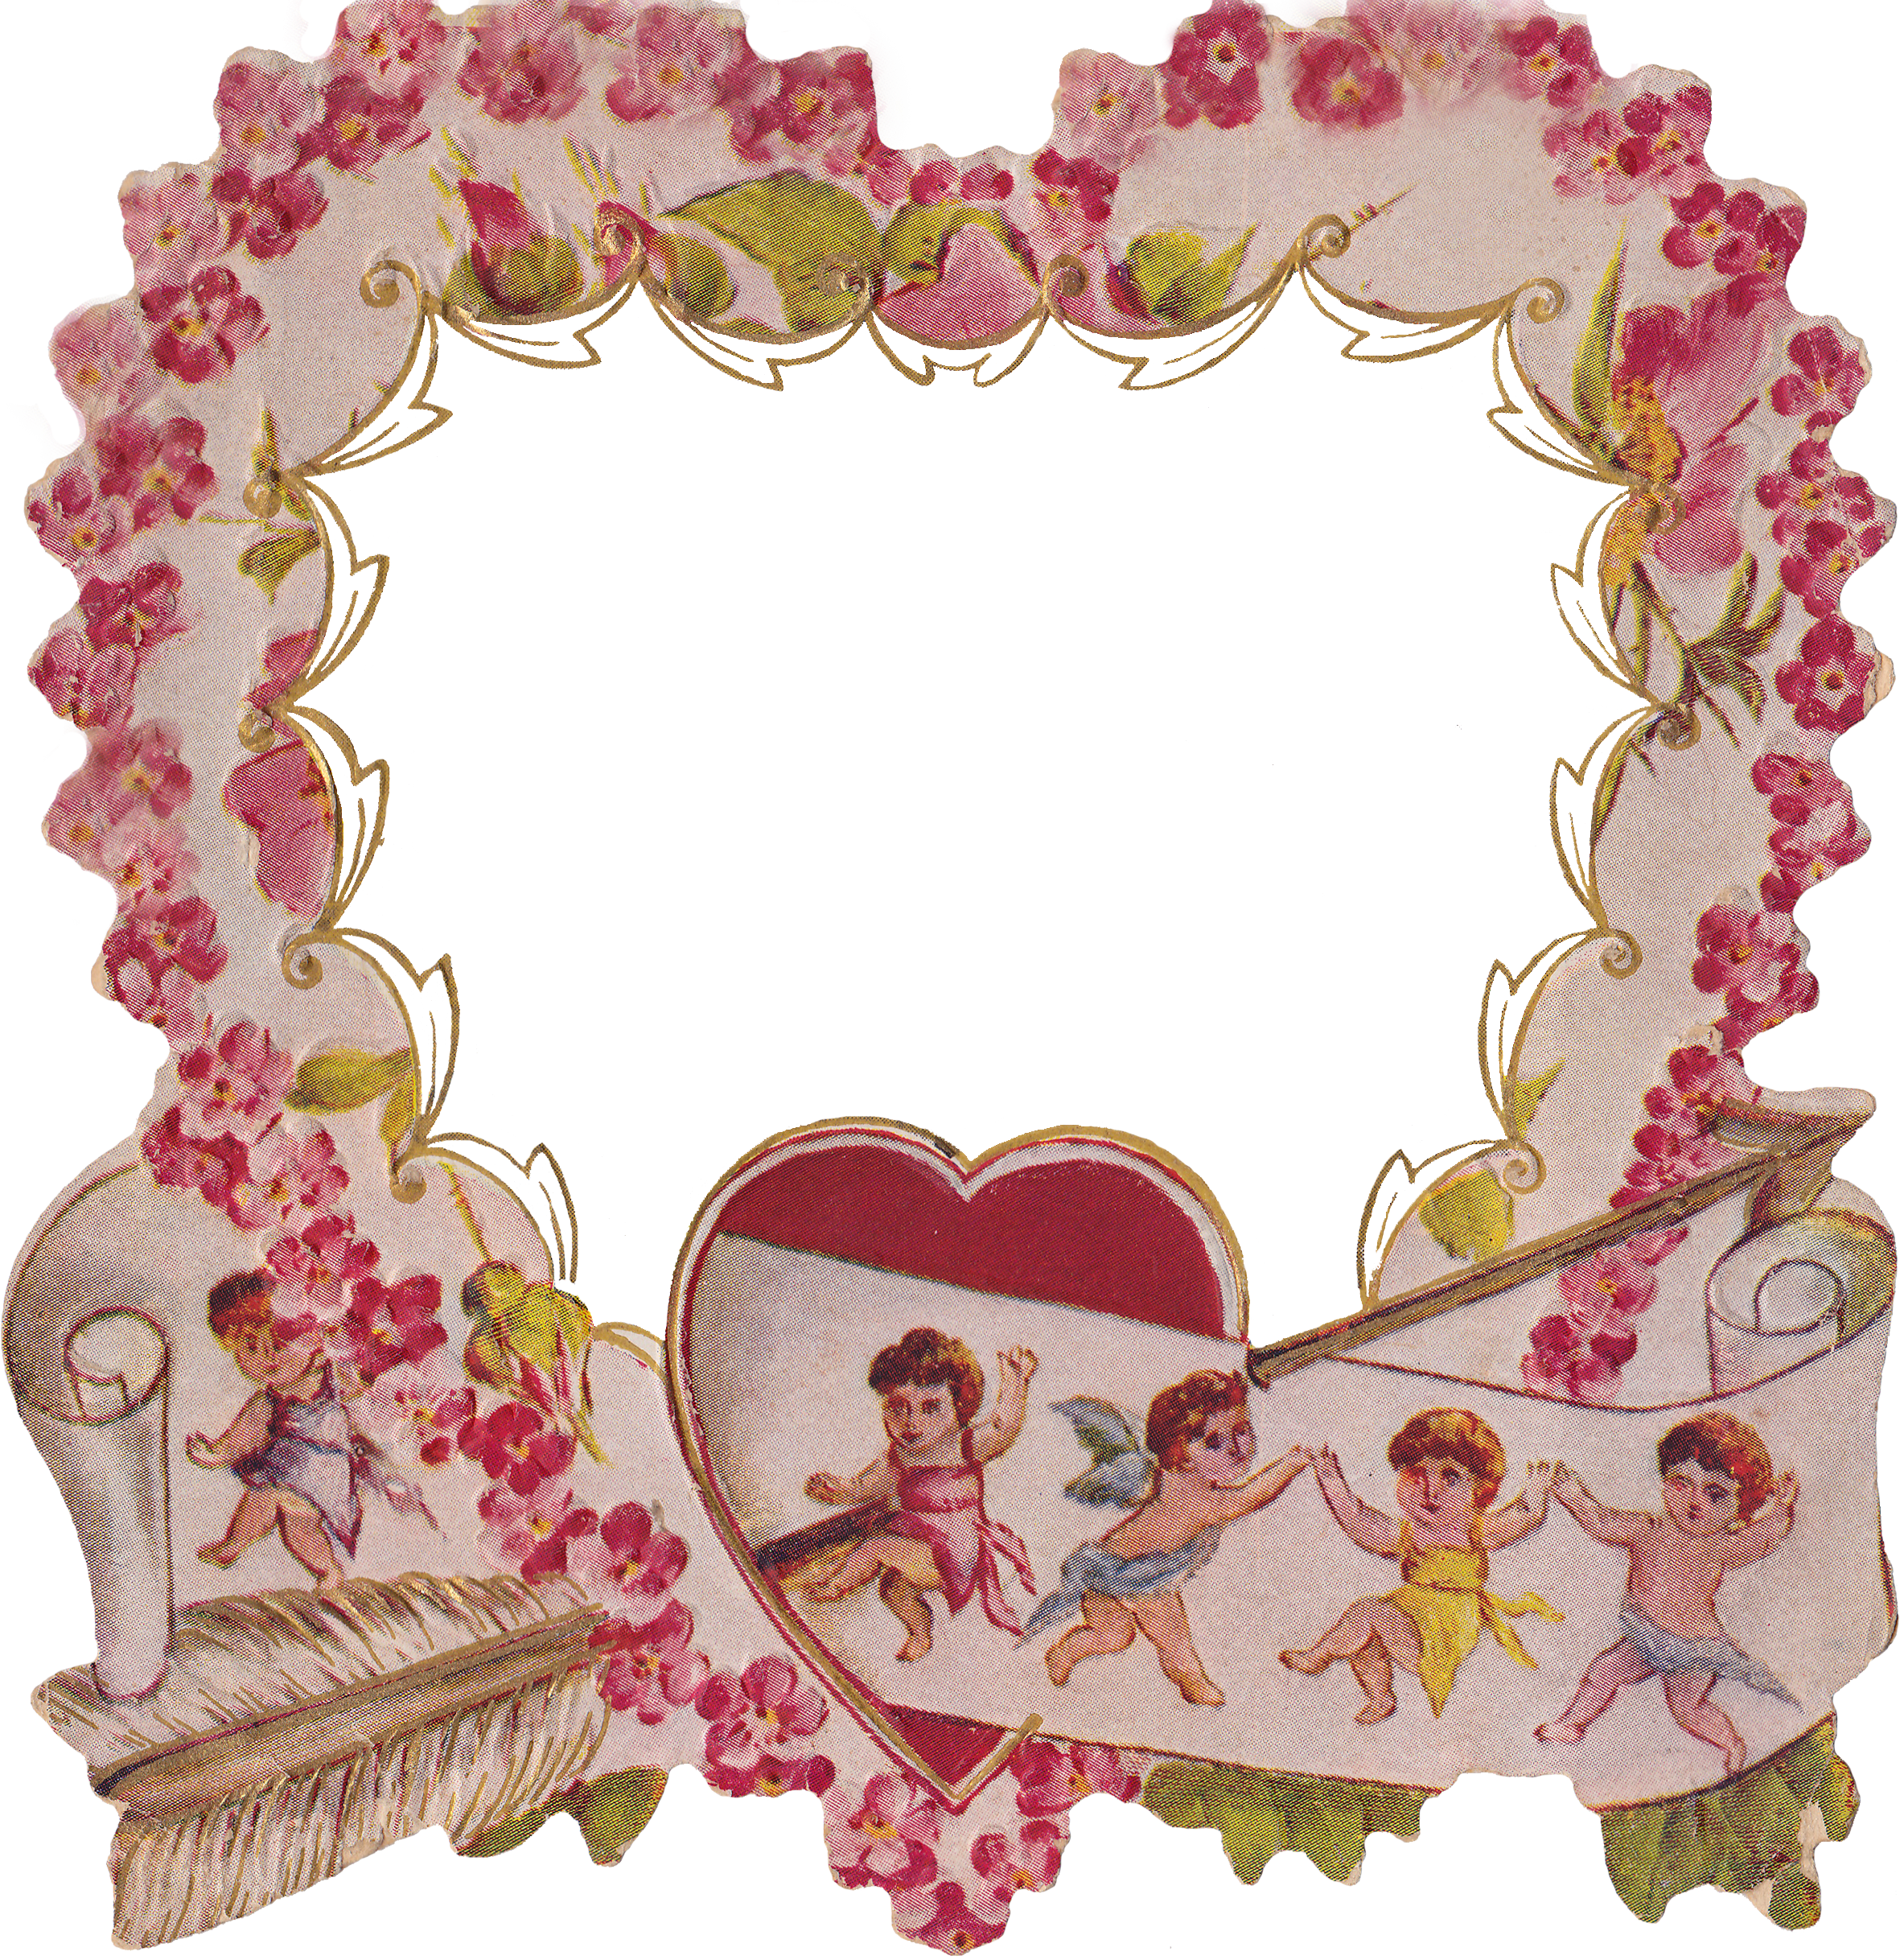 """Whimsy heart clipart banner transparent library Die Cut Heart & """"Love And Esteem"""" Poem – Wings of Whimsy banner transparent library"""